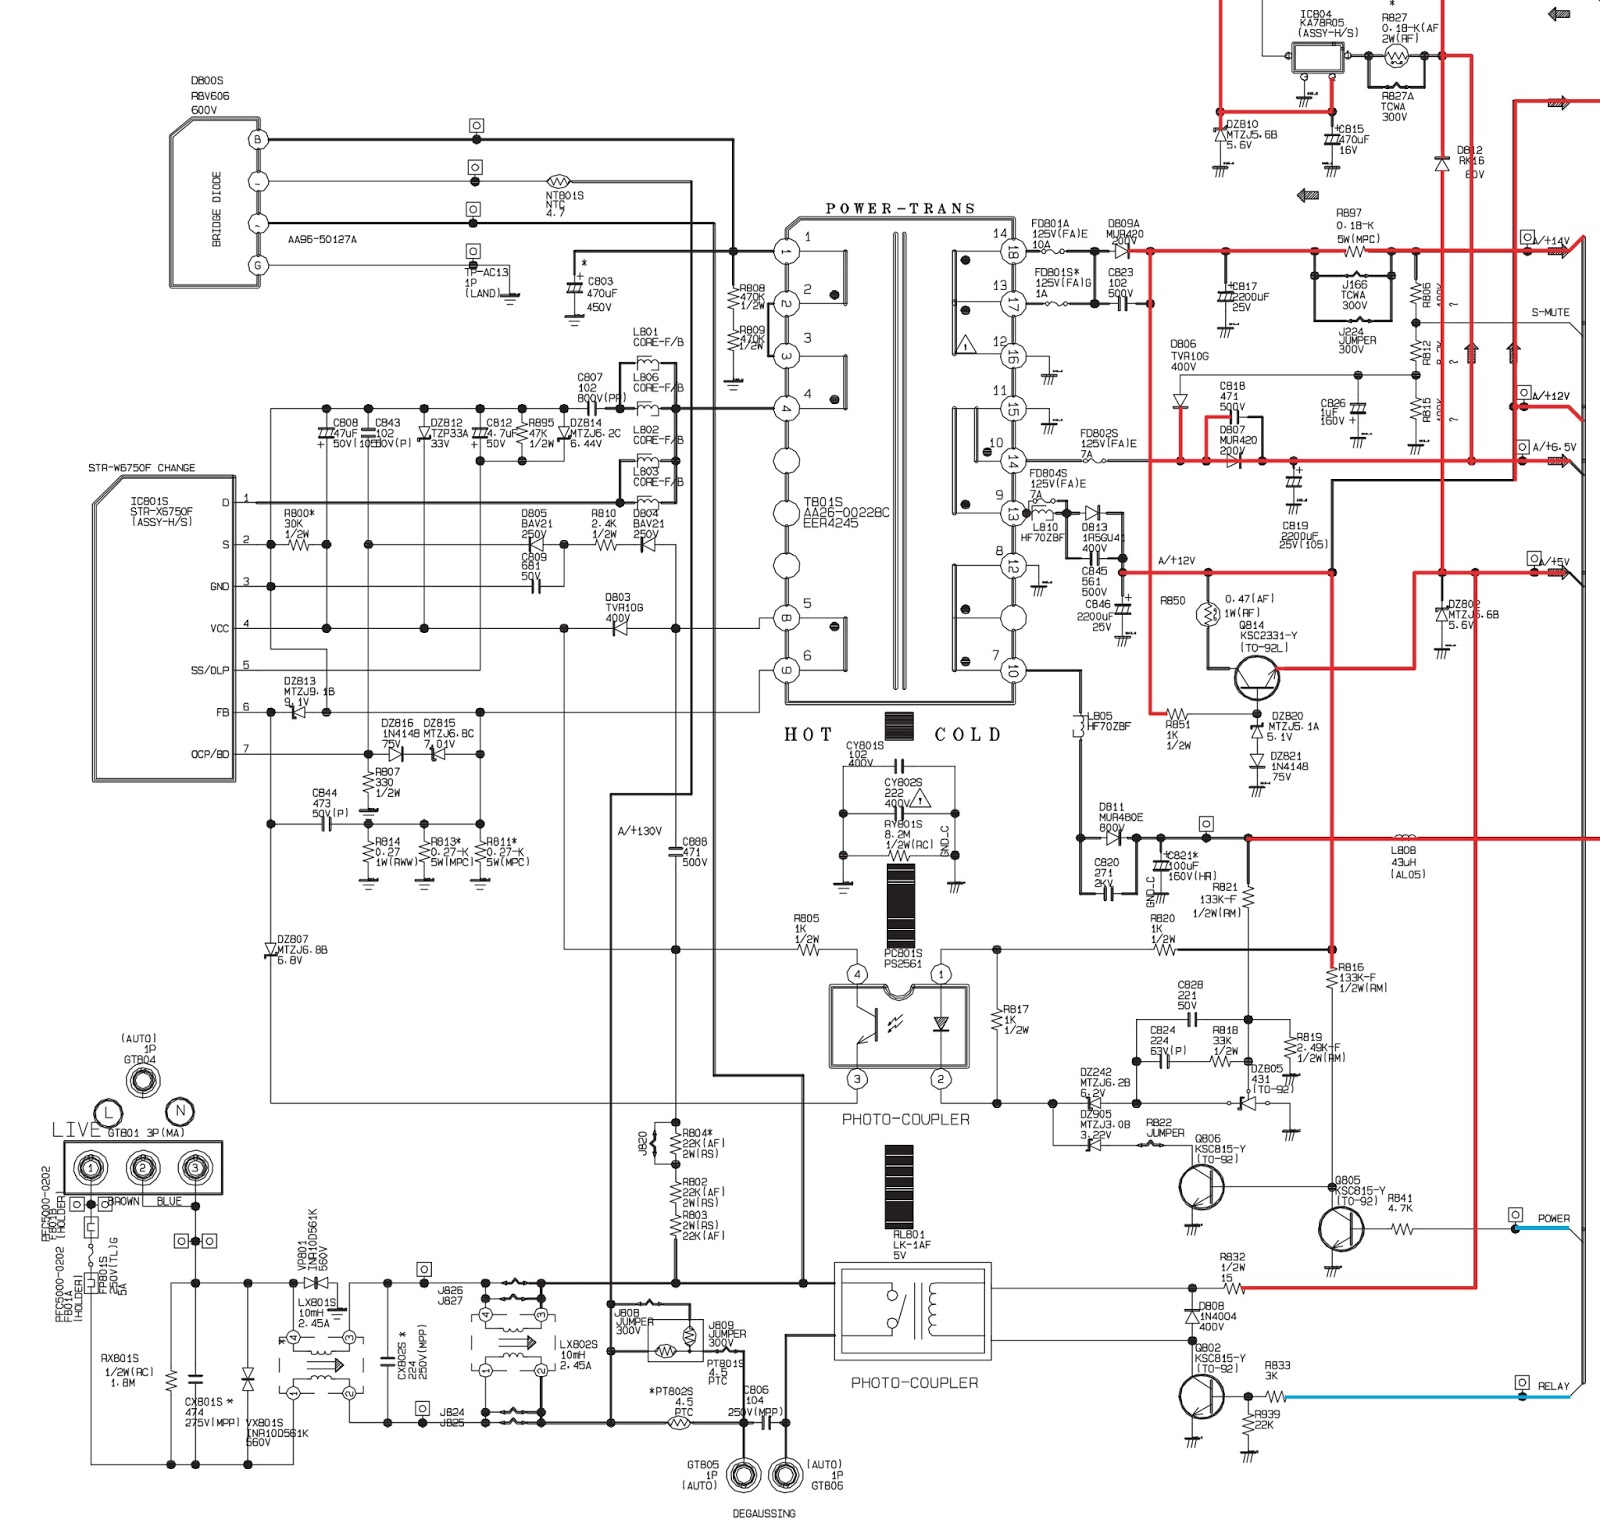 samsung cl29x50 power supply smps schematic circuit diagram str x6750f [ 1600 x 1530 Pixel ]